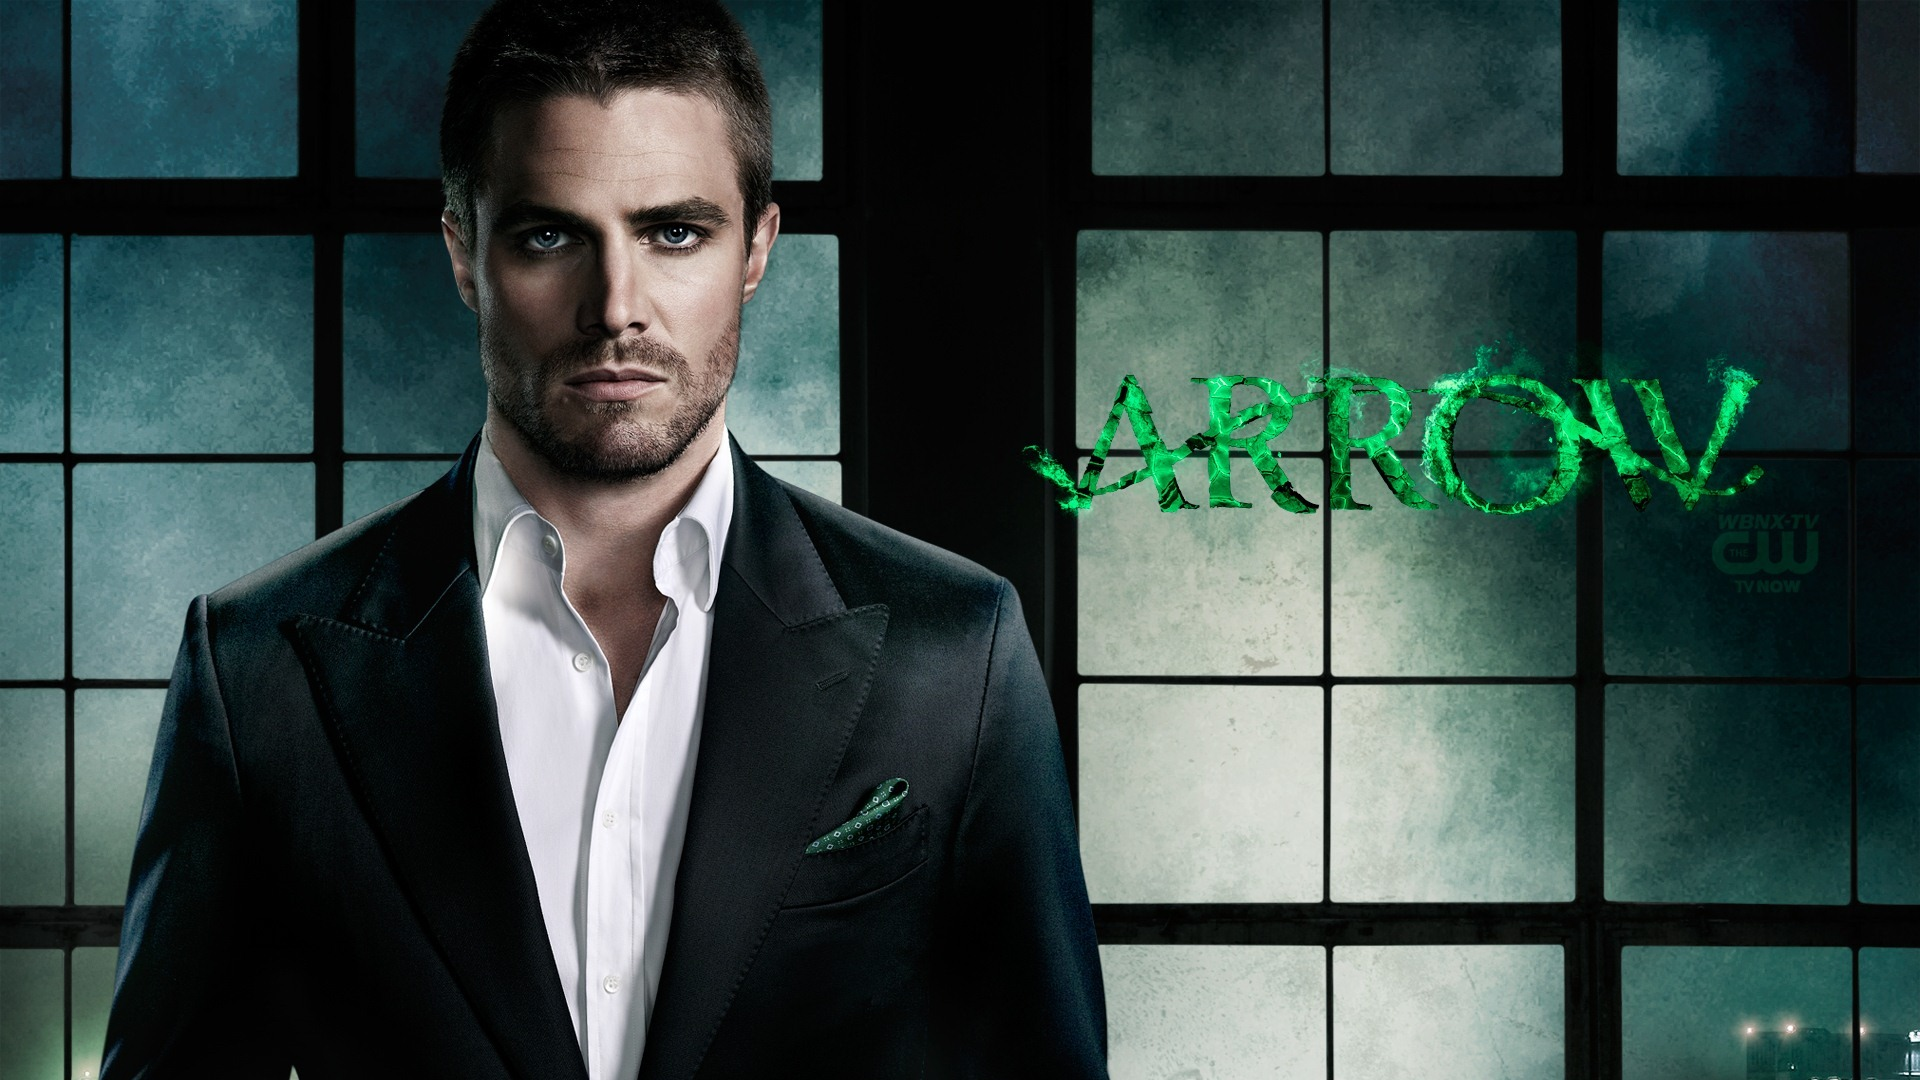 Wallpaper Arrow Lazarus Pit Oliver Queen Stephen Amell HD TV